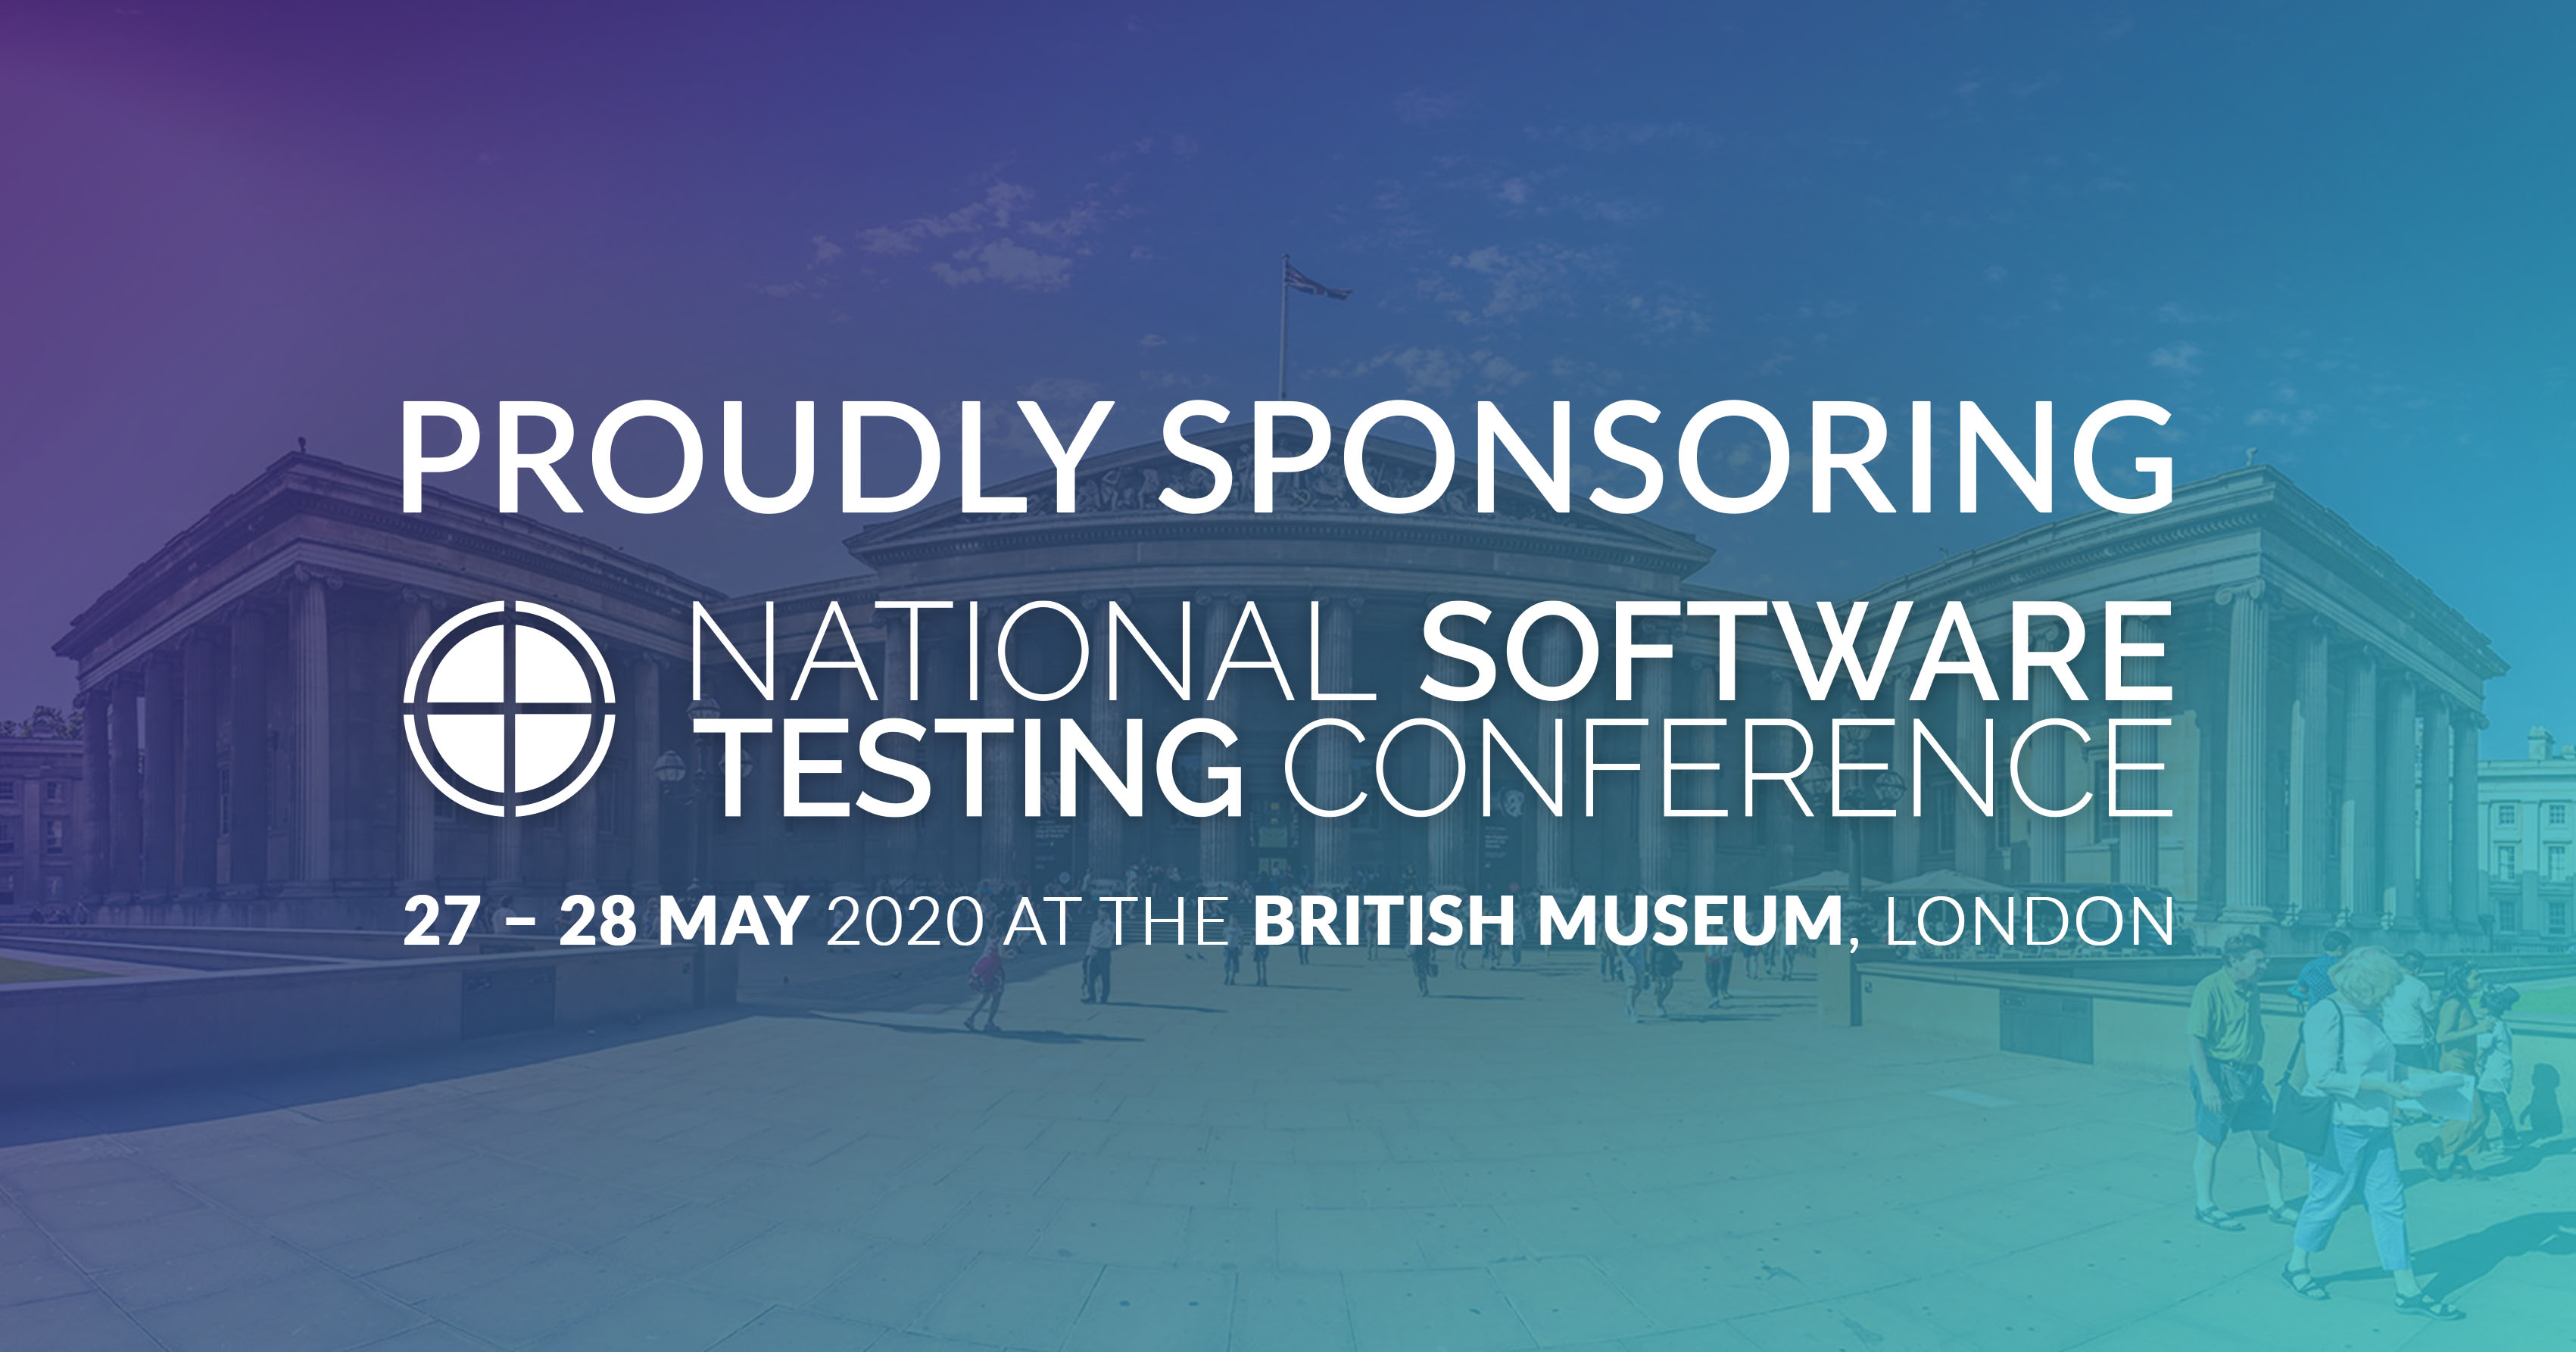 We're sponsoring the National Software Testing Conference 2020